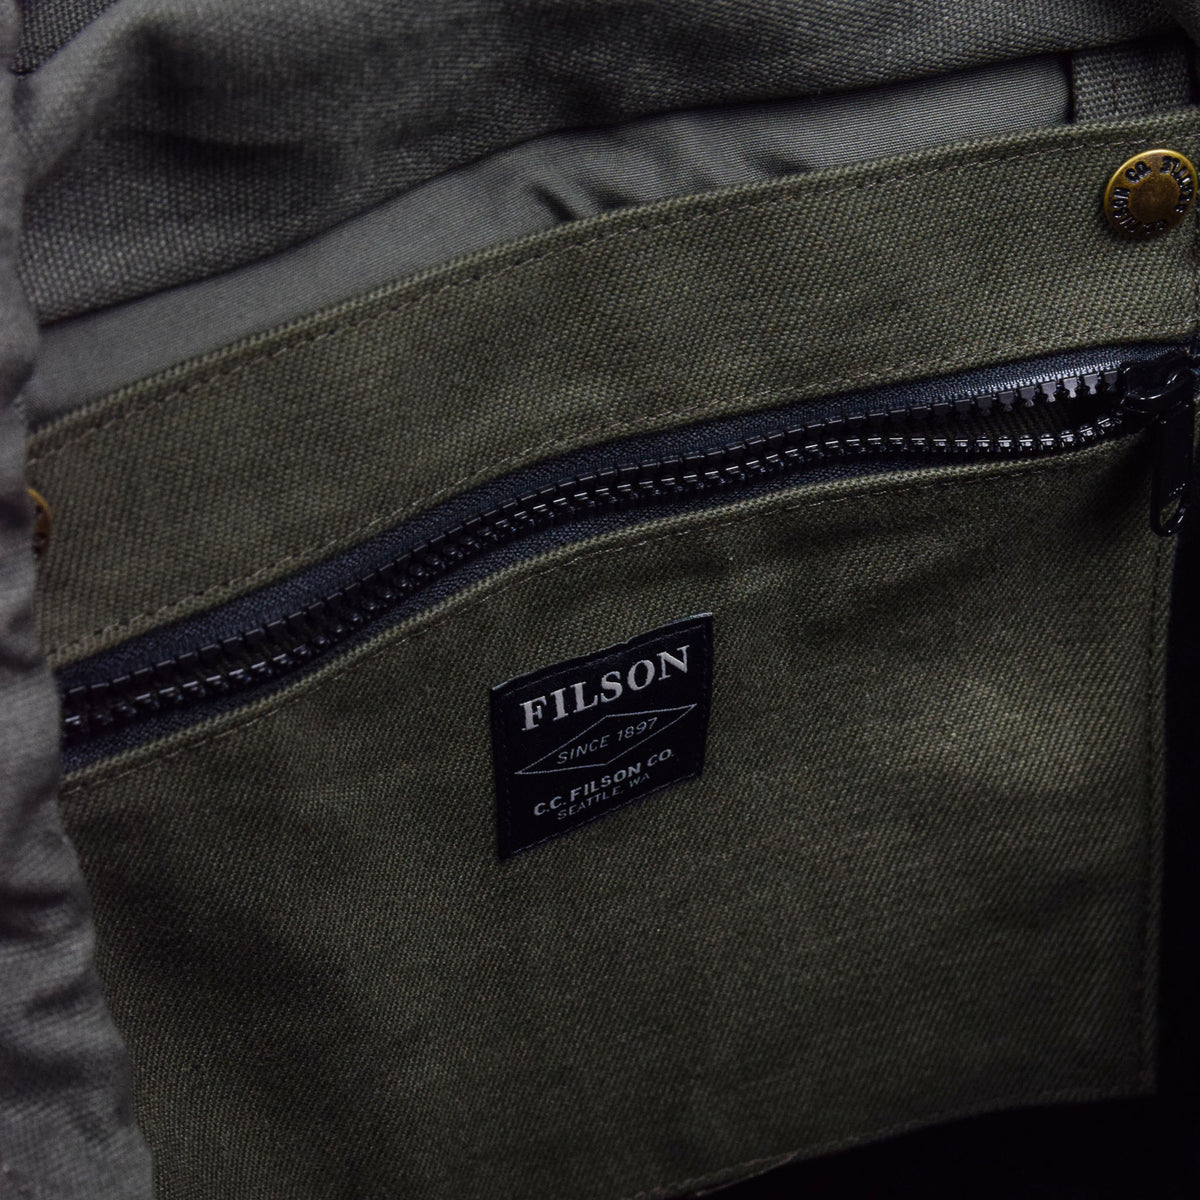 Filson Rugged Twill Ranger Backpack Otter Green Inside Detail